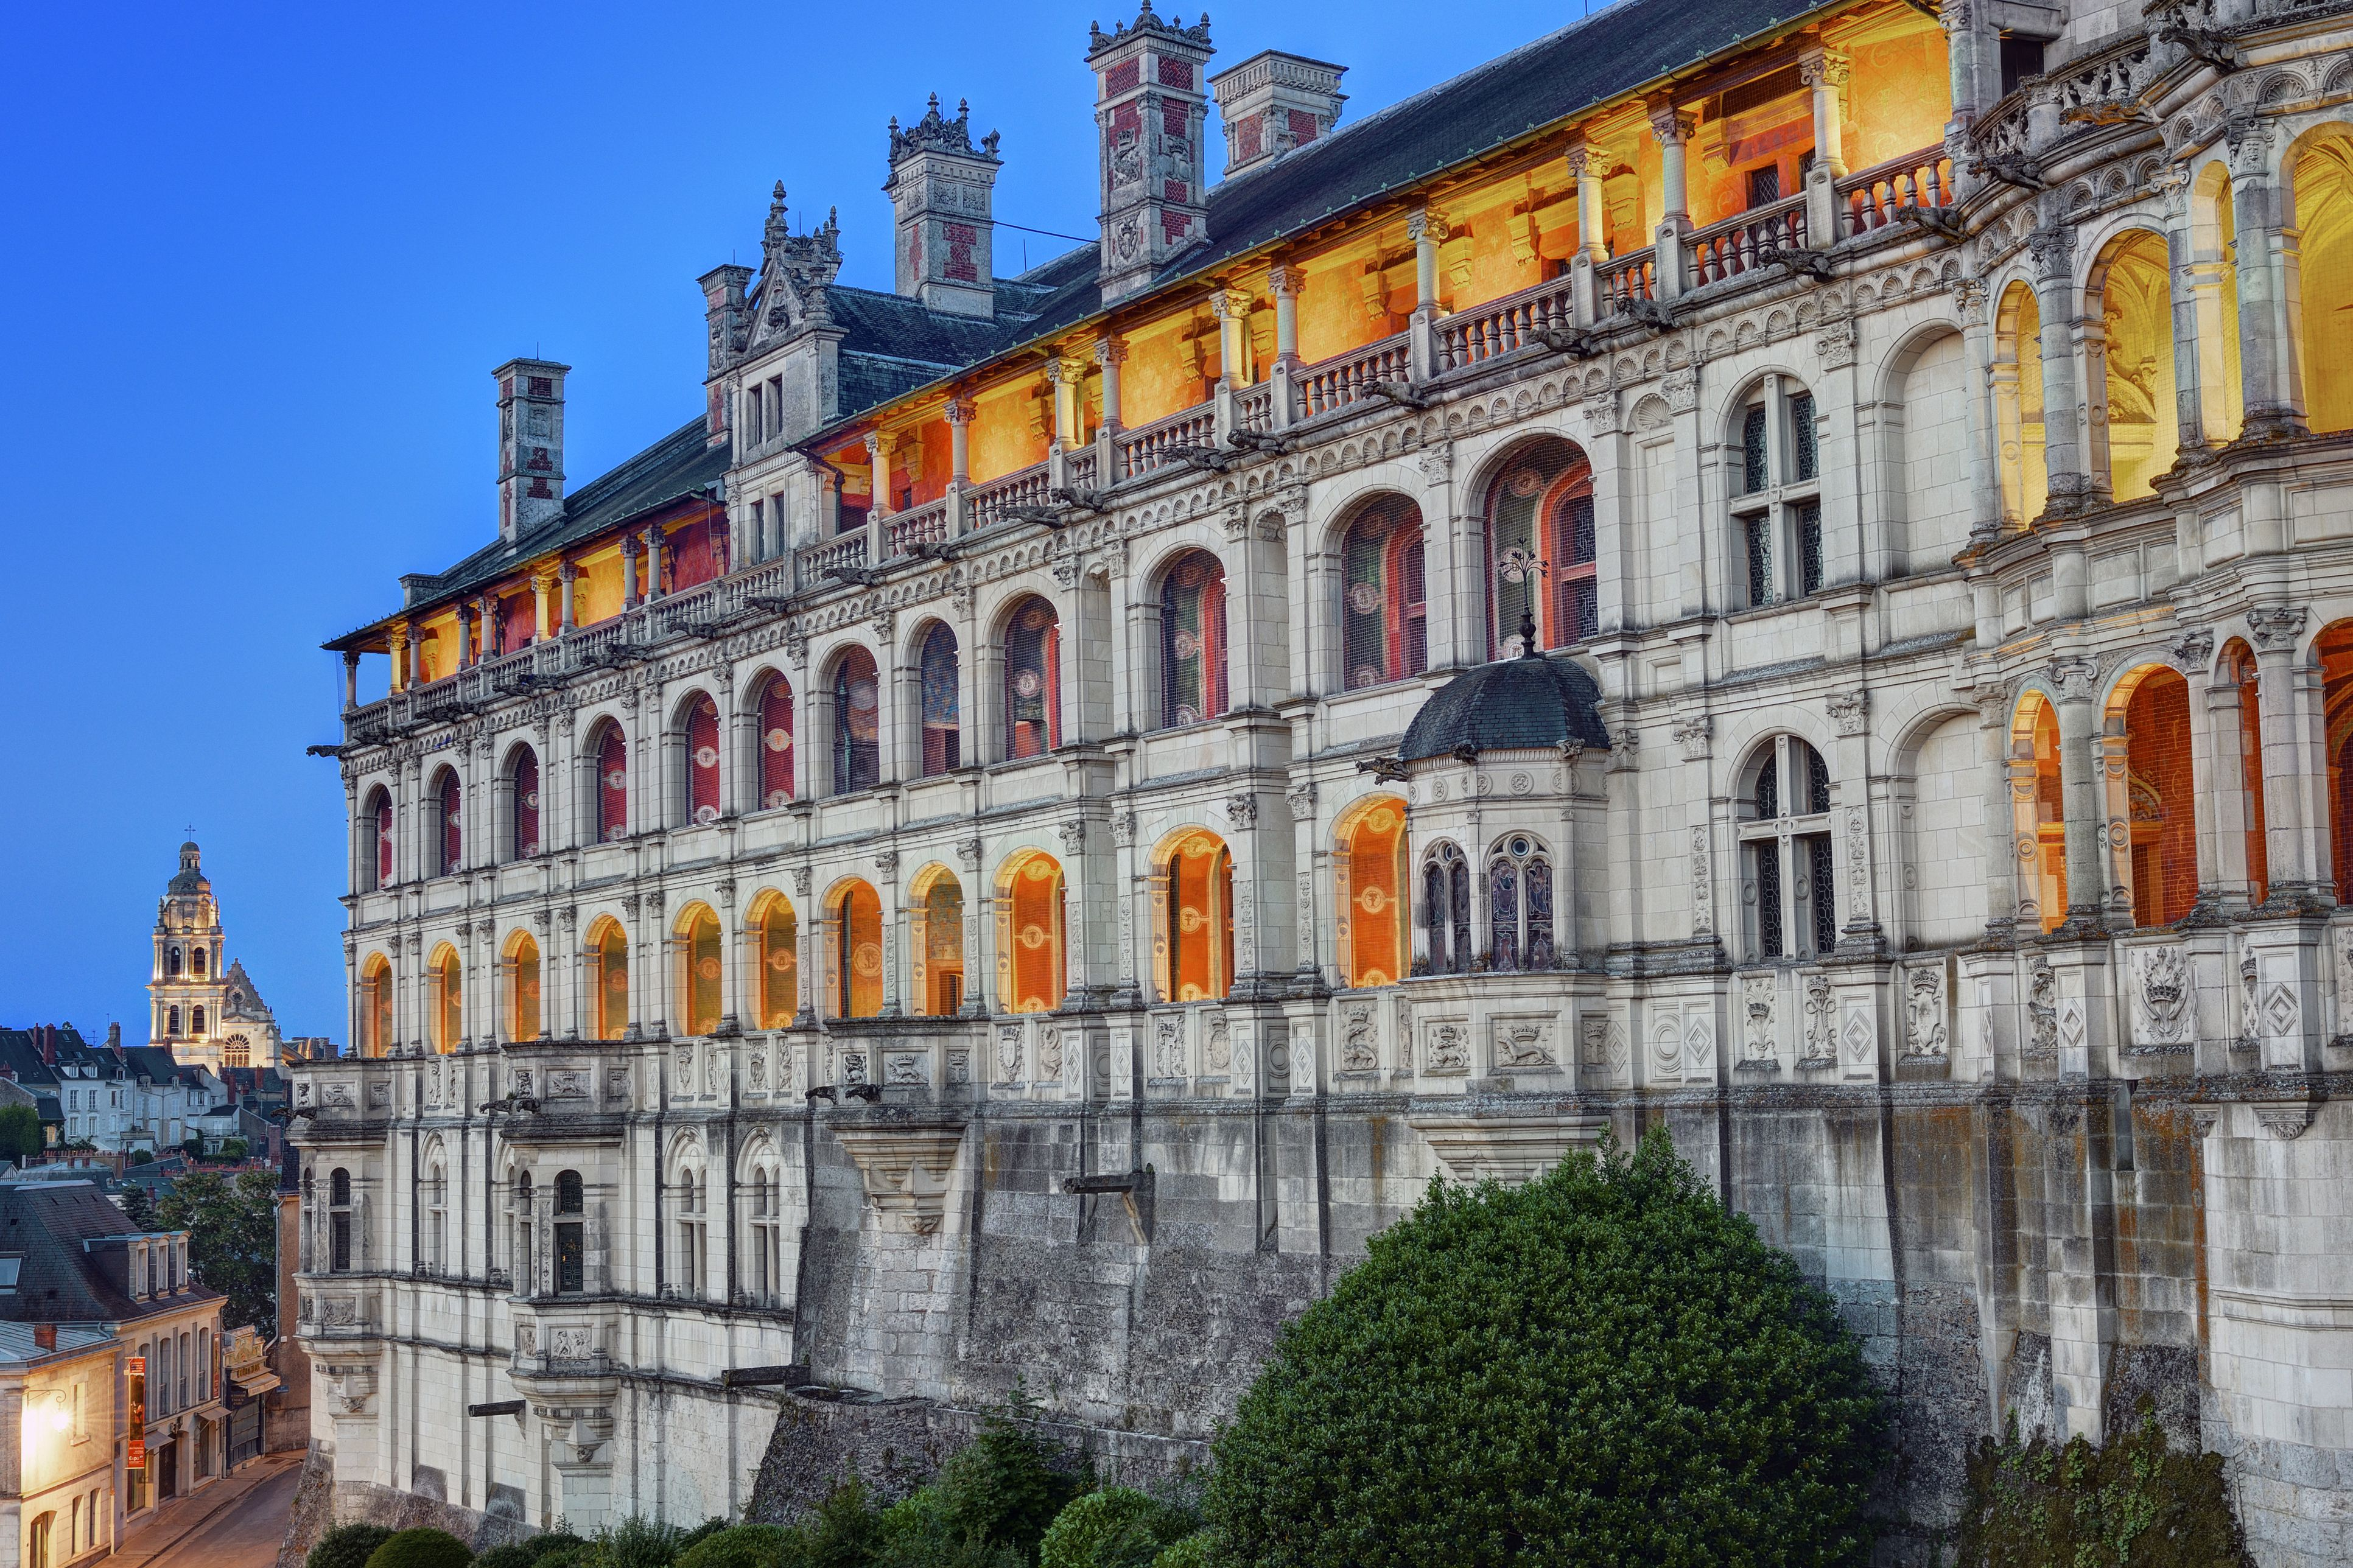 France, Loir et Cher, Loire valley listed as World Heritage by UNESCO, Blois, castle of Blois, the Loges facade of Francis I wing